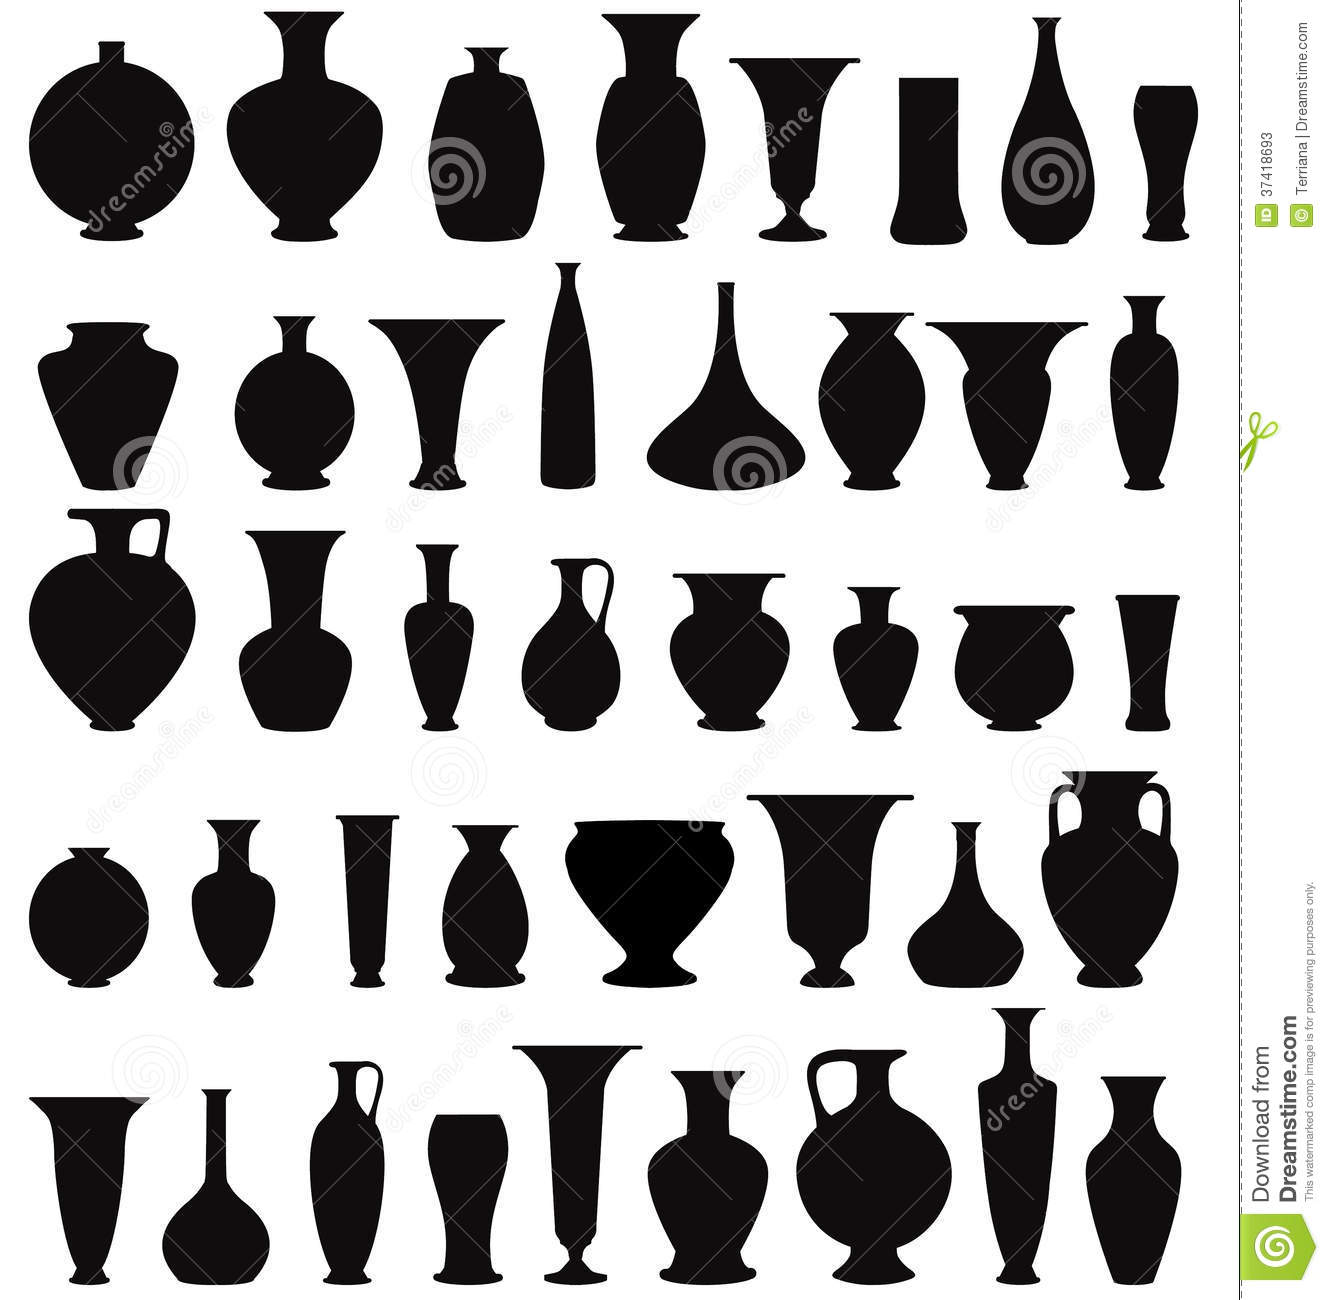 flower vase sketch with Stock Photos Vase Silhouette Set Interior Decor Collection Pot Pottery Vases Flower Home Decoration Vector Icon Image37418693 on Flowers Flowers Flowers furthermore Sunflower Drawings Drawn Sunflower Pencil Sketch Pencil And In Color Drawn further katemaloneceramics additionally Pencil Drawing Pictures Of Flowers as well Vintage Bouquet Of Flowers.